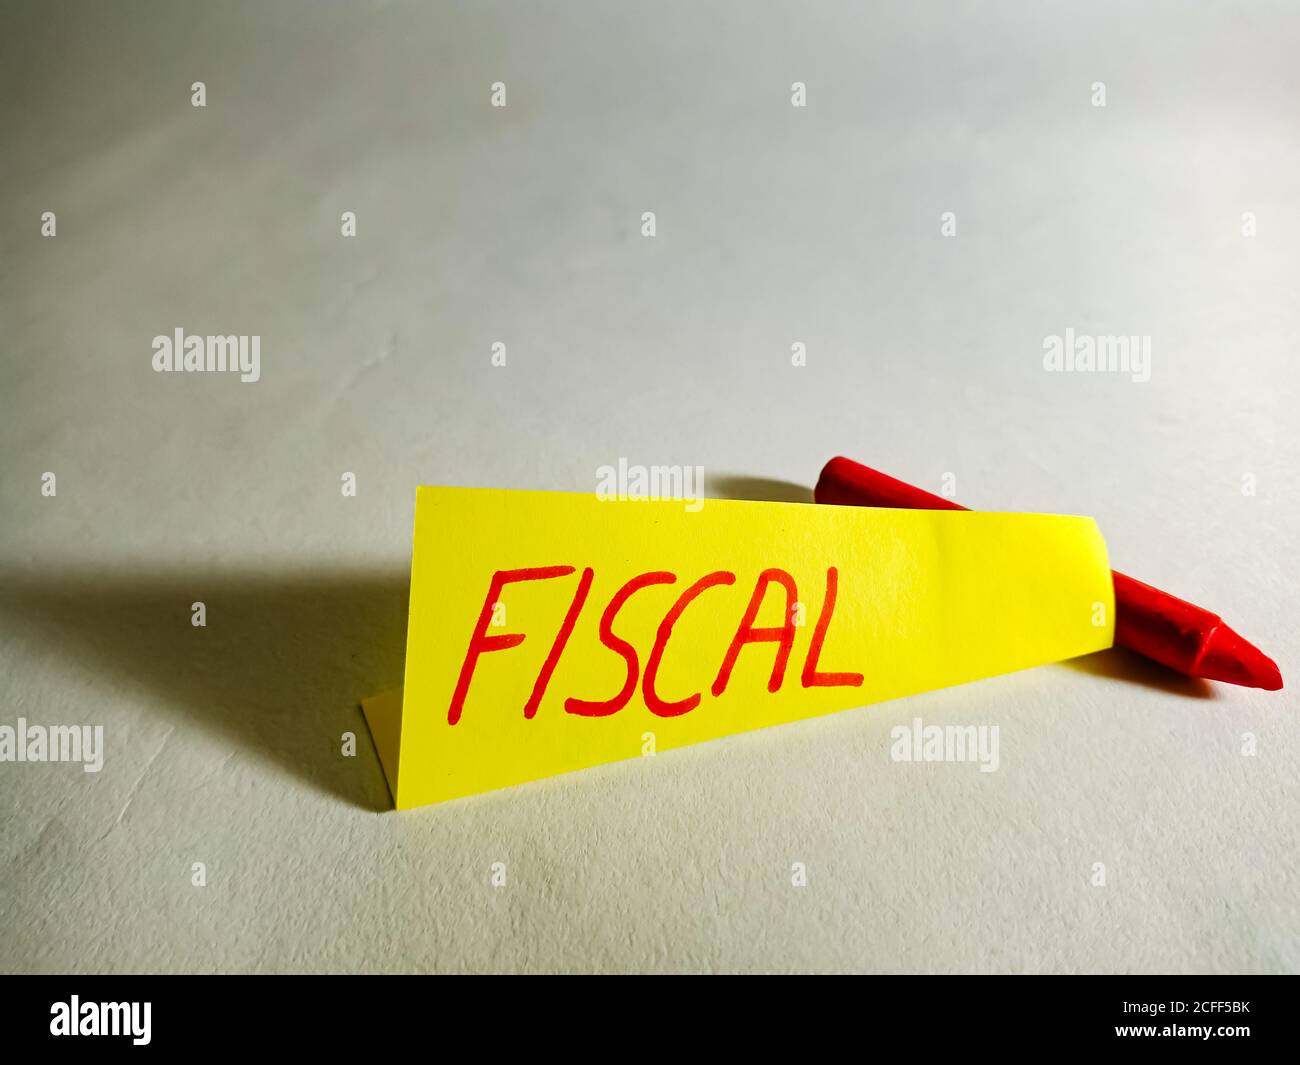 Fiscal word displayed on paper slip concept for educational informative awareness. Stock Photo